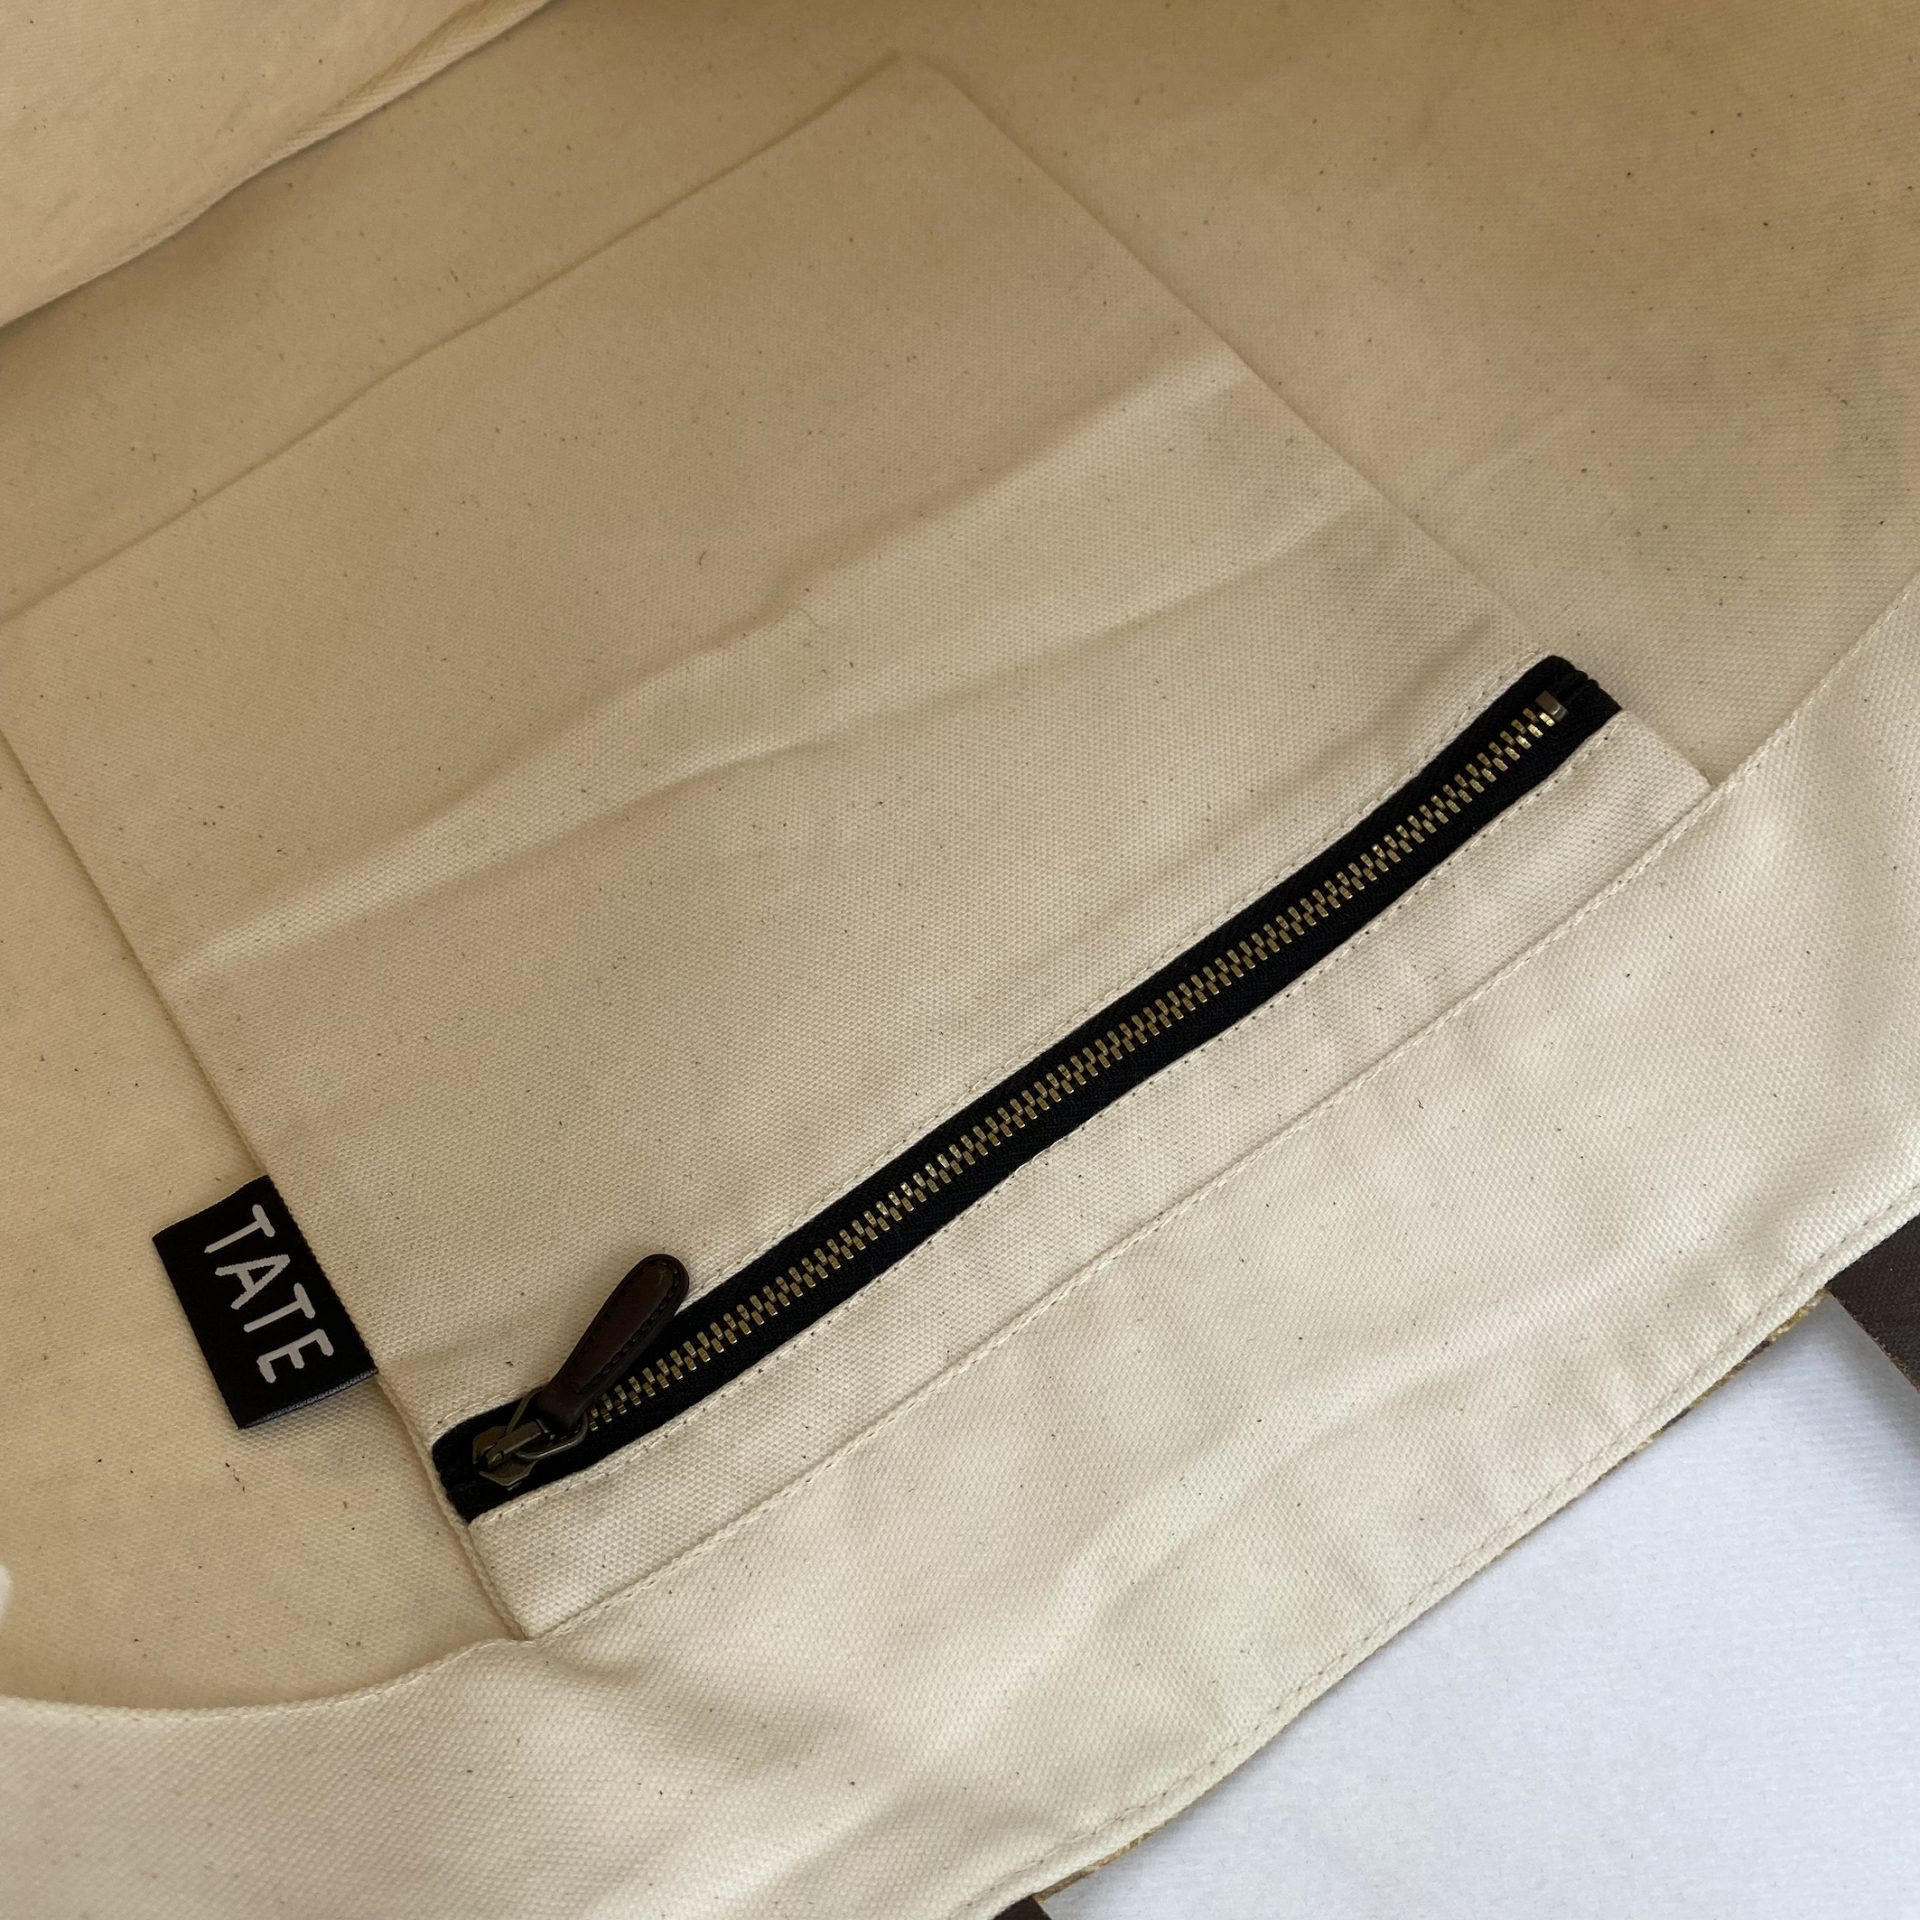 Leather pulled zip pocket in a luxury tote bag for the Tate by Paul Bristow's